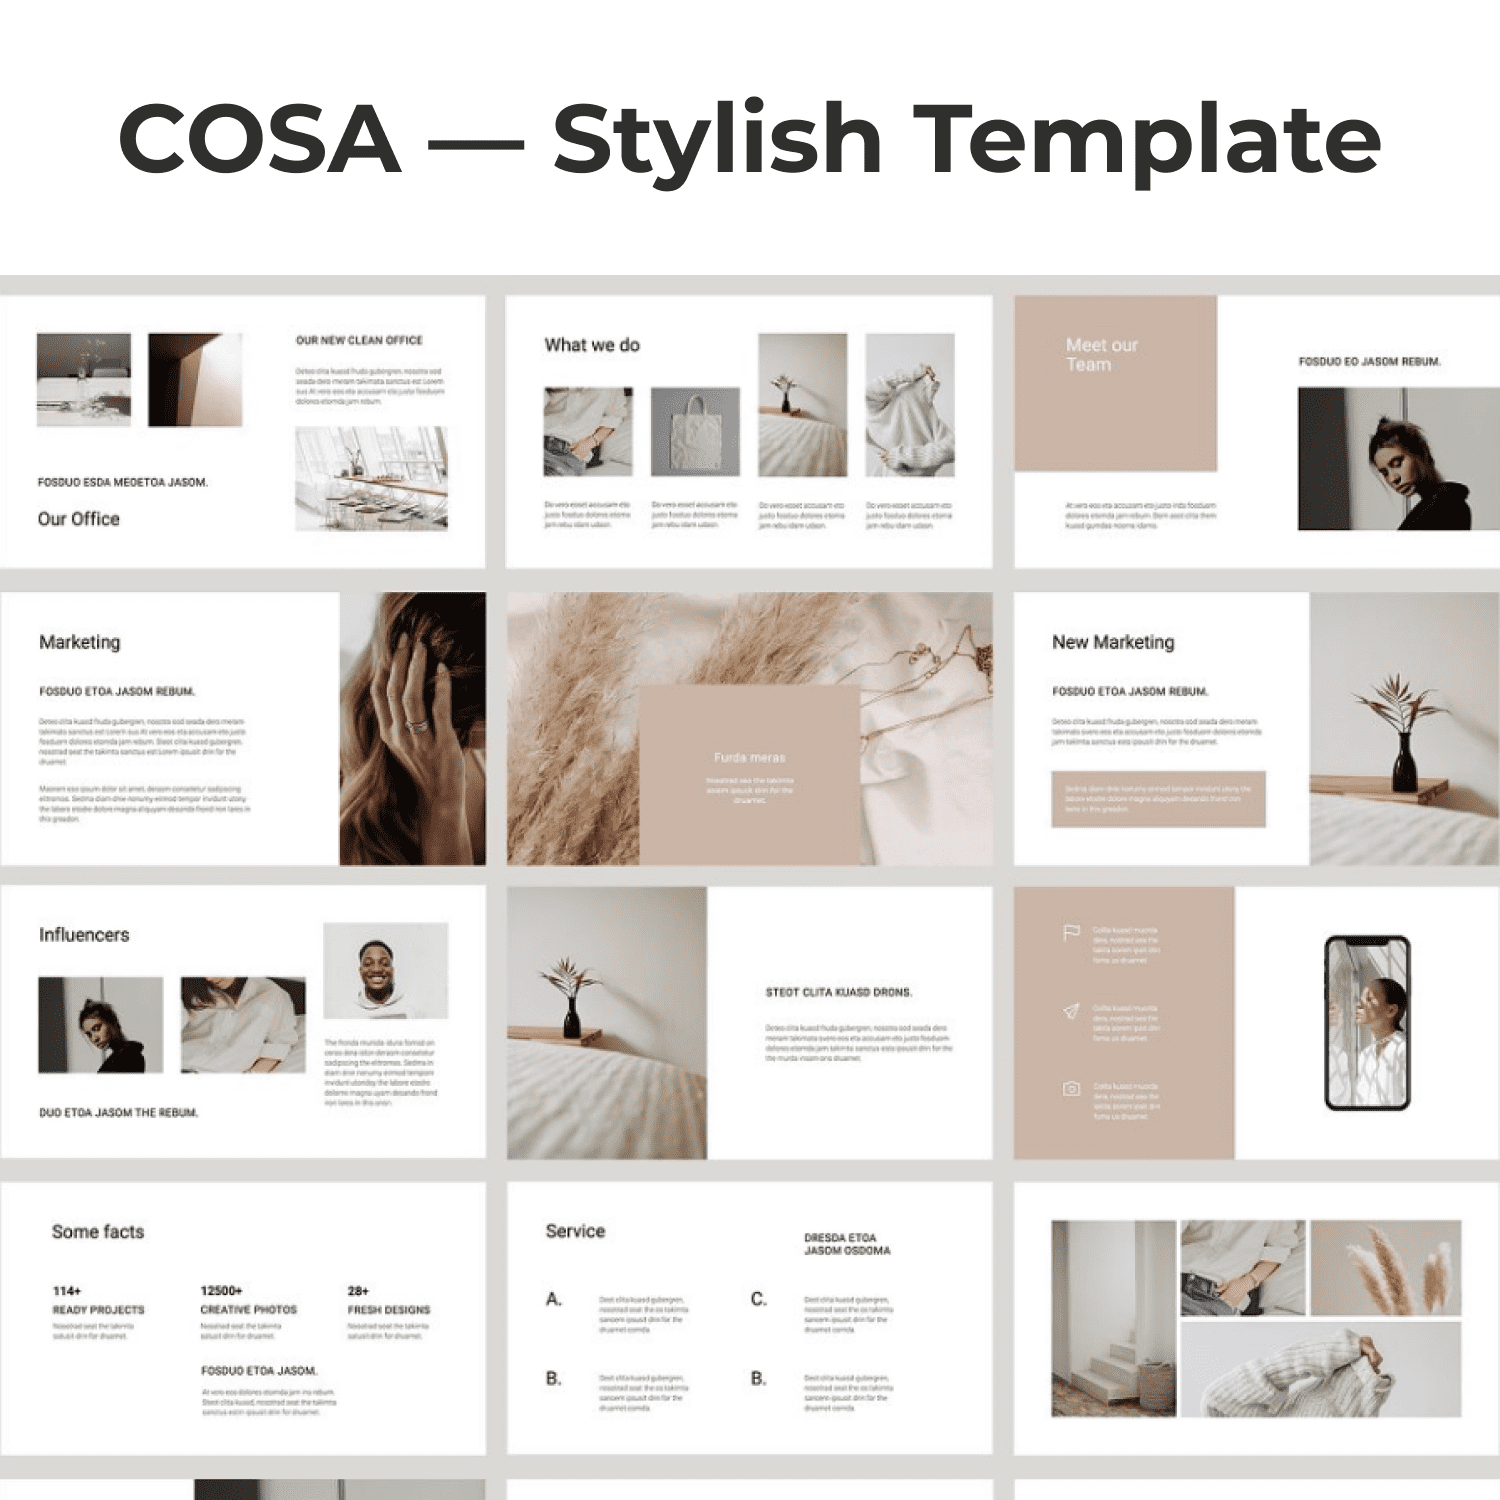 COSA - Keynote Style Template by MasterBundles Collage Image.